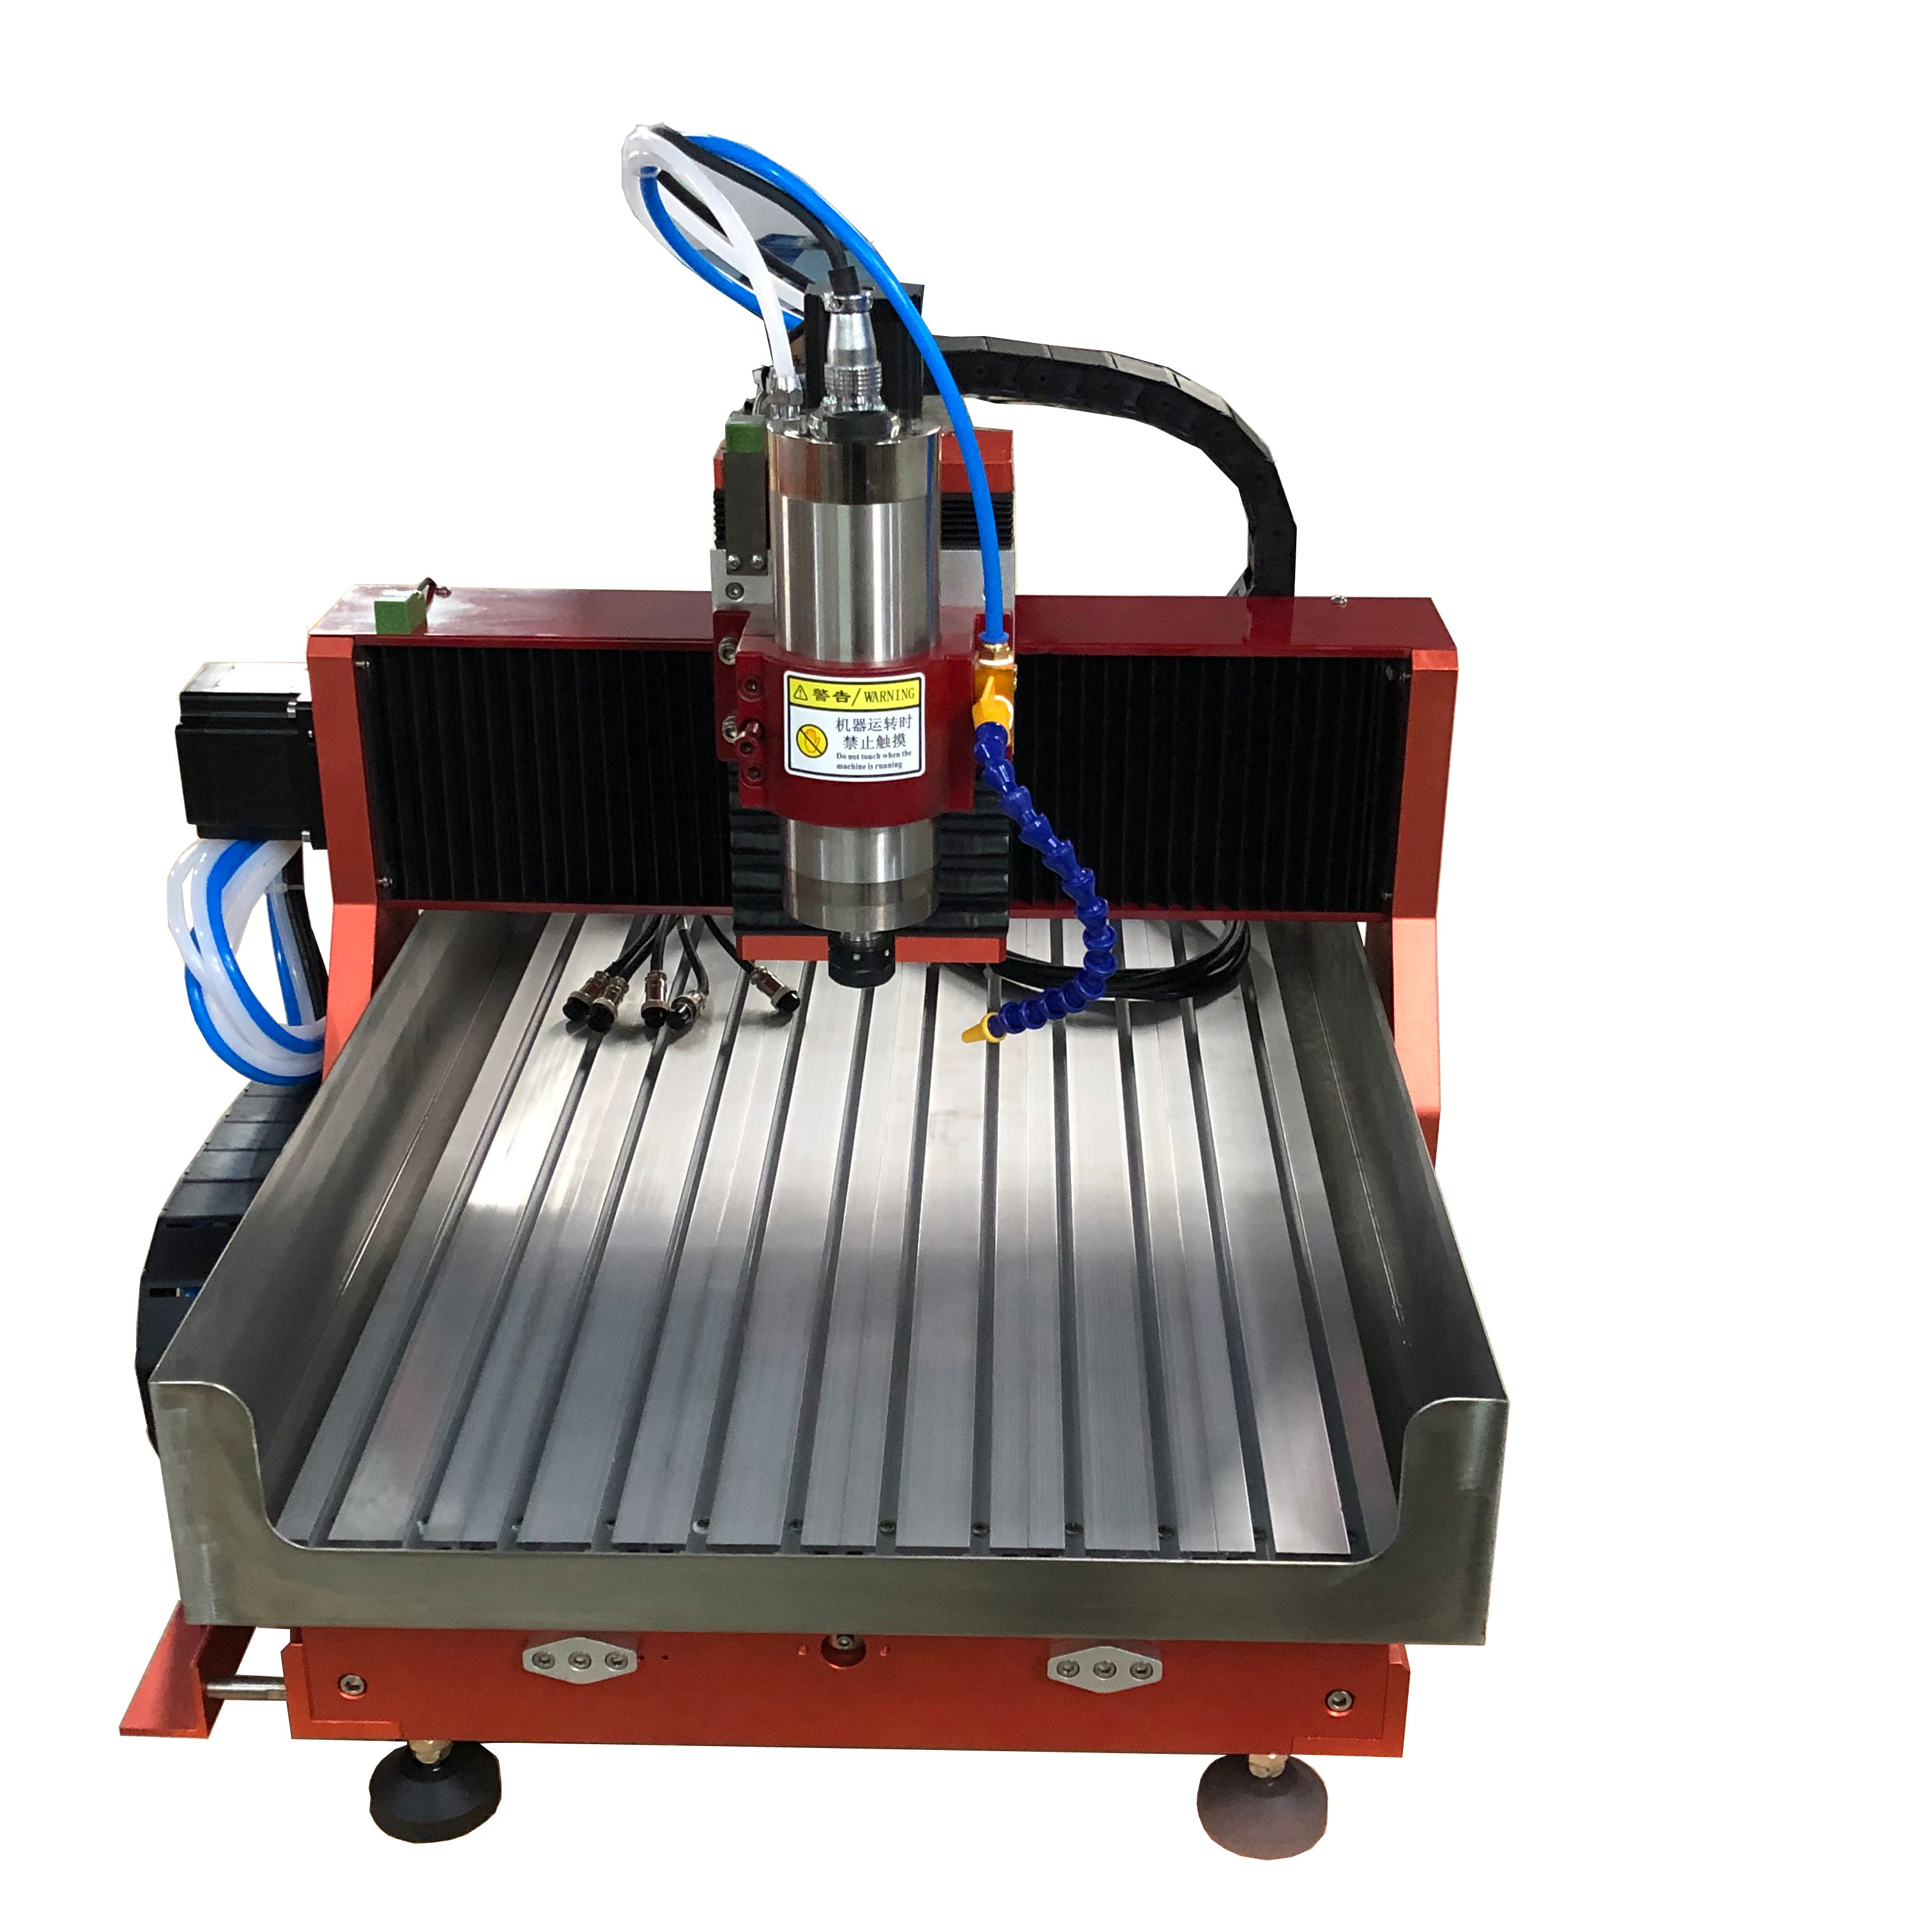 Table CNC router 3 axis engraving machine spindle motor 1.5kw water cooling